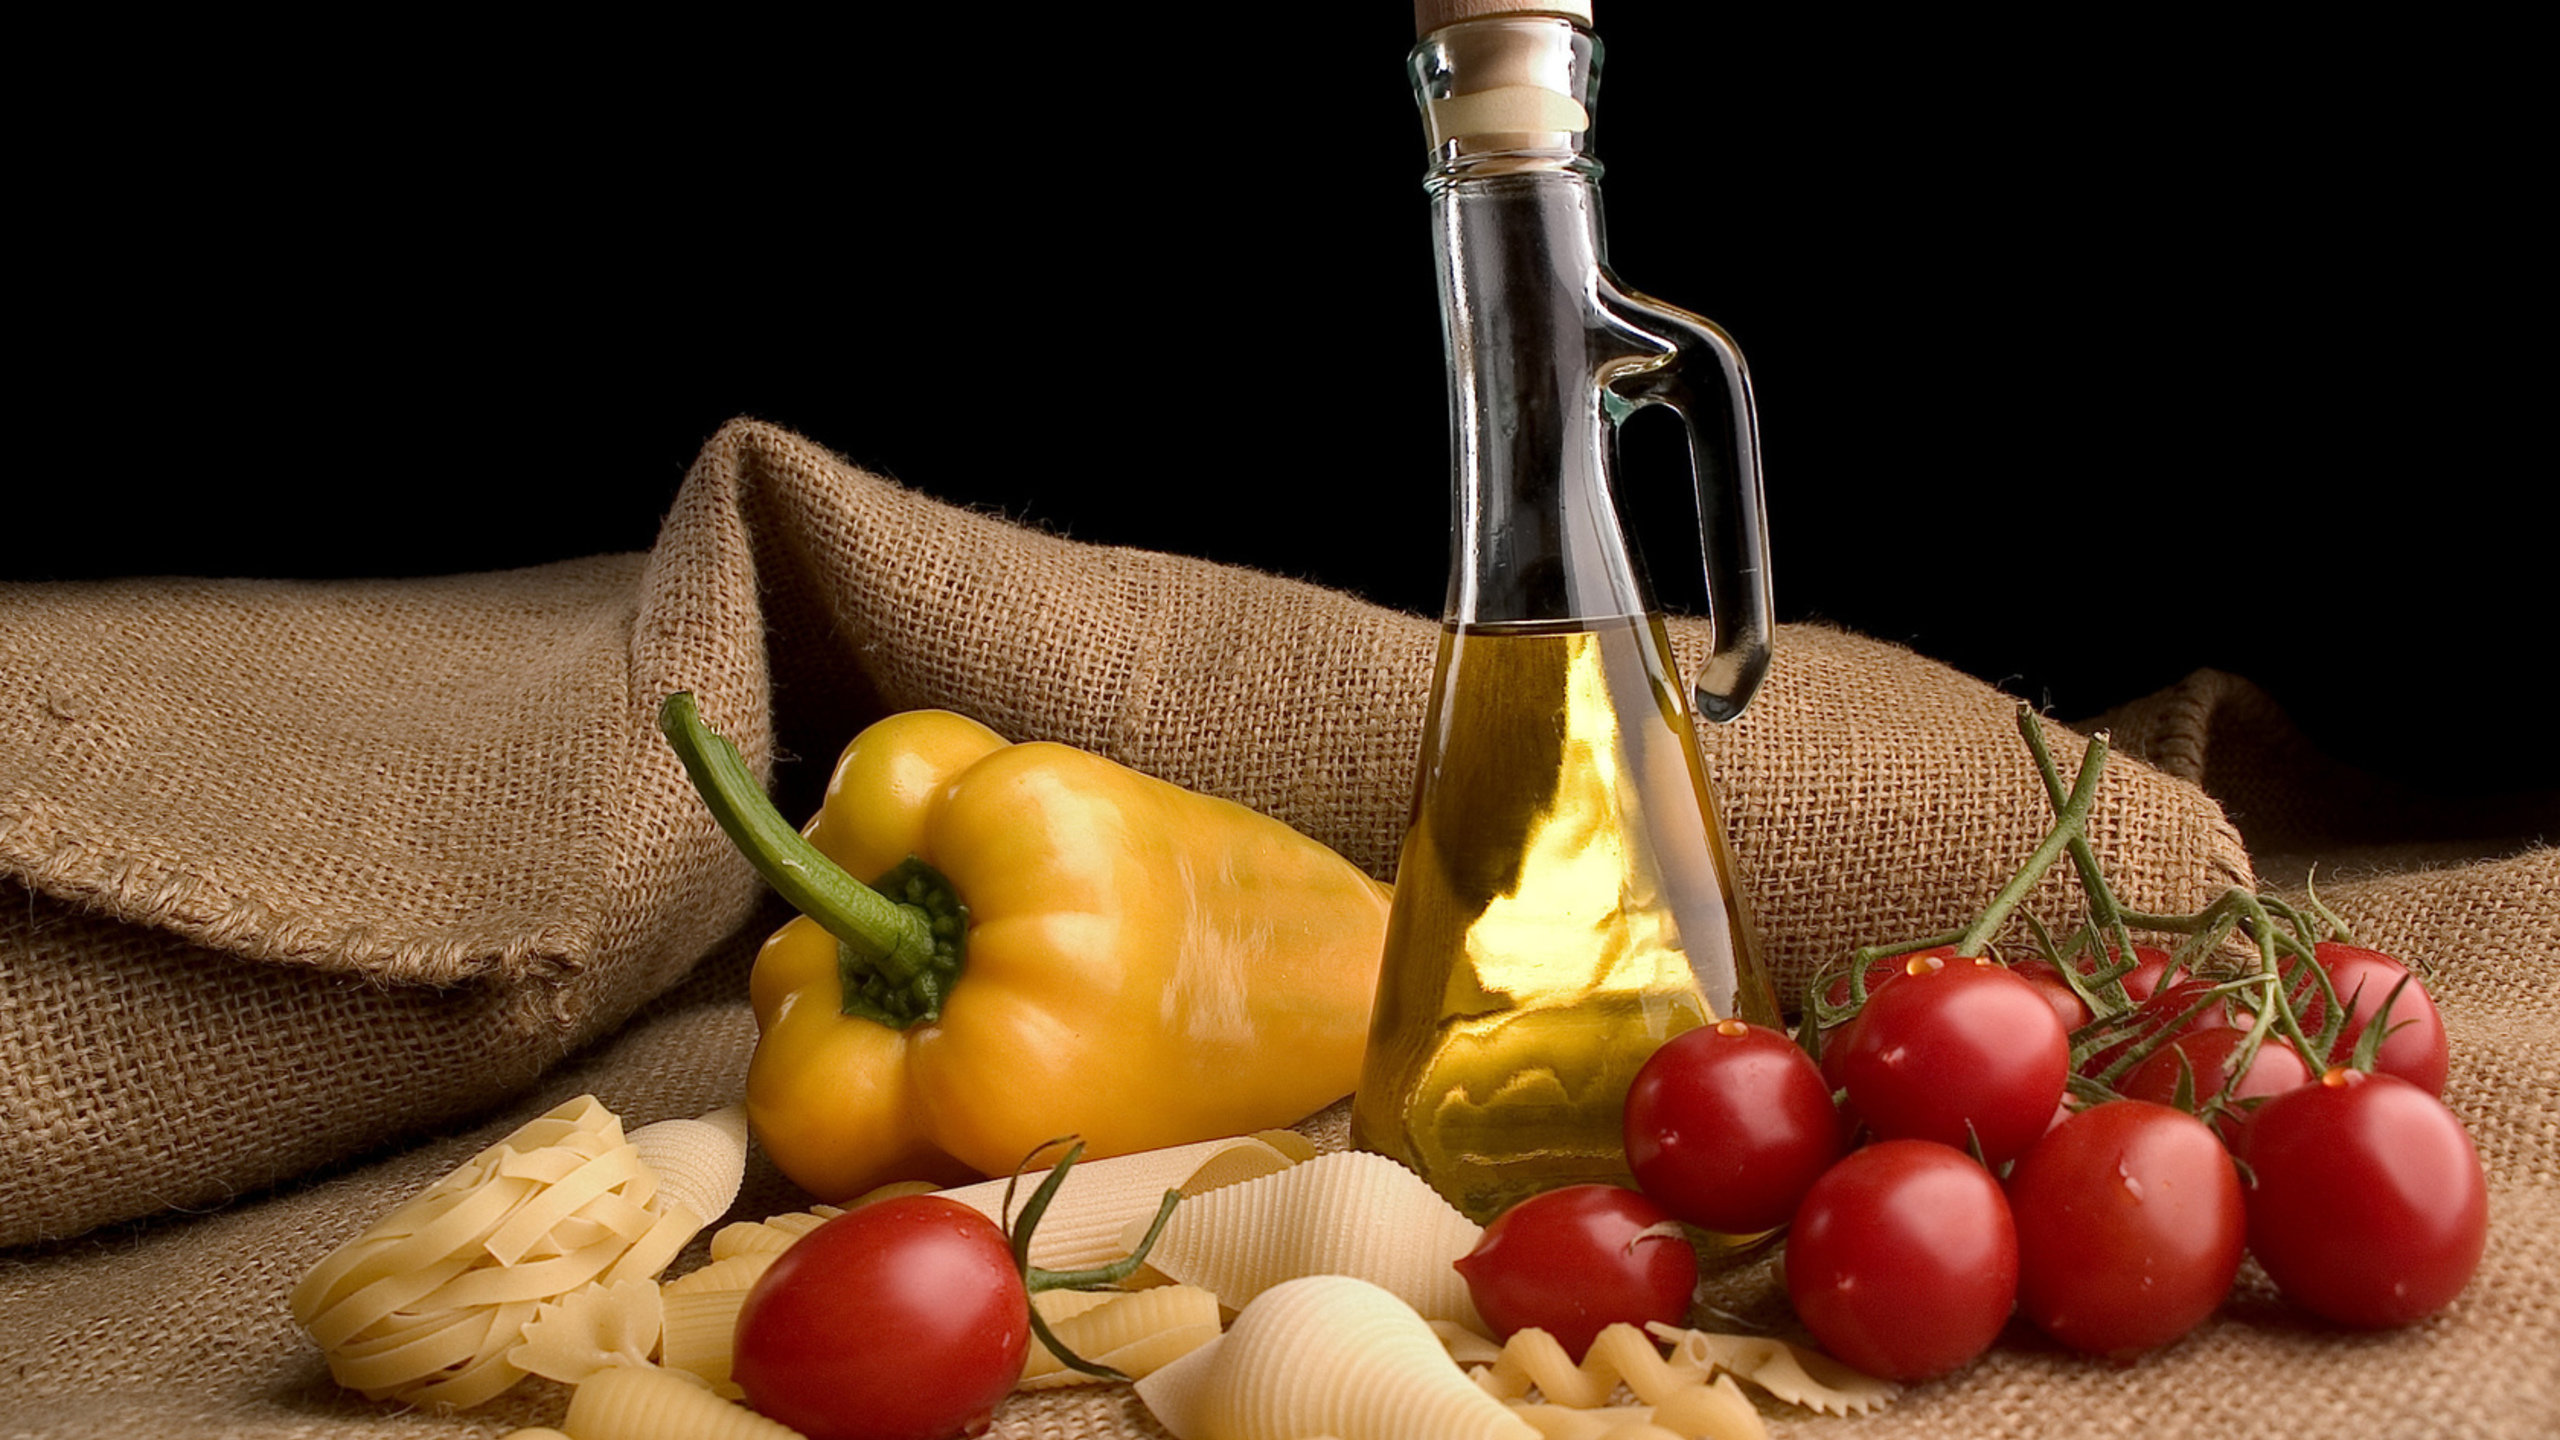 Free Still Life Food high quality wallpaper ID:436437 for hd 2560x1440 computer